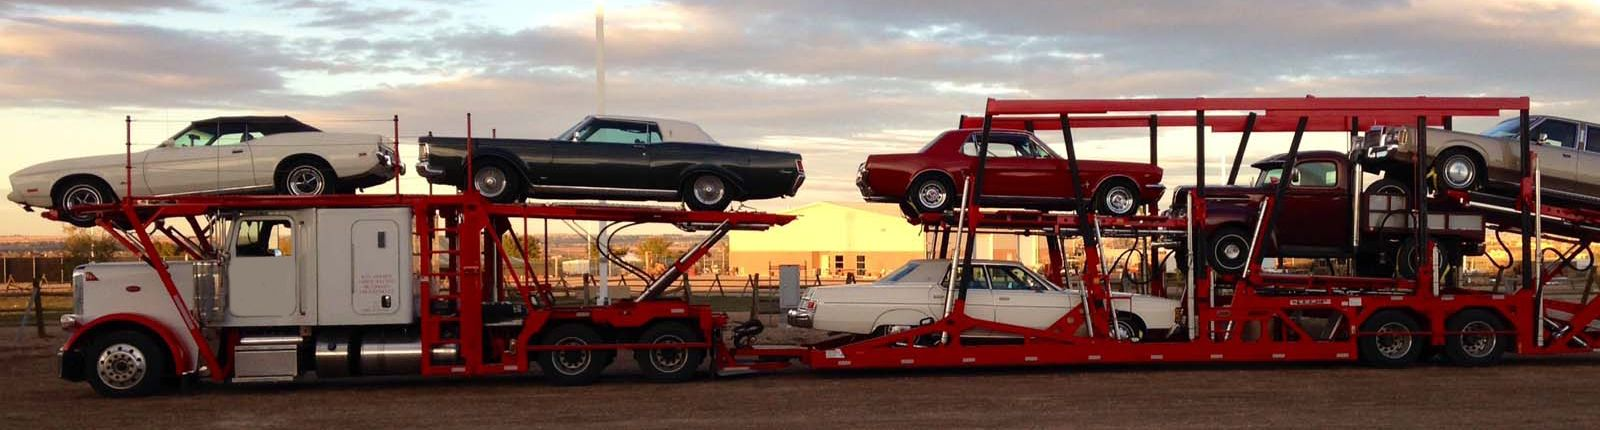 Car Transport Companies >> Florida Transport Company Transportation Companies In